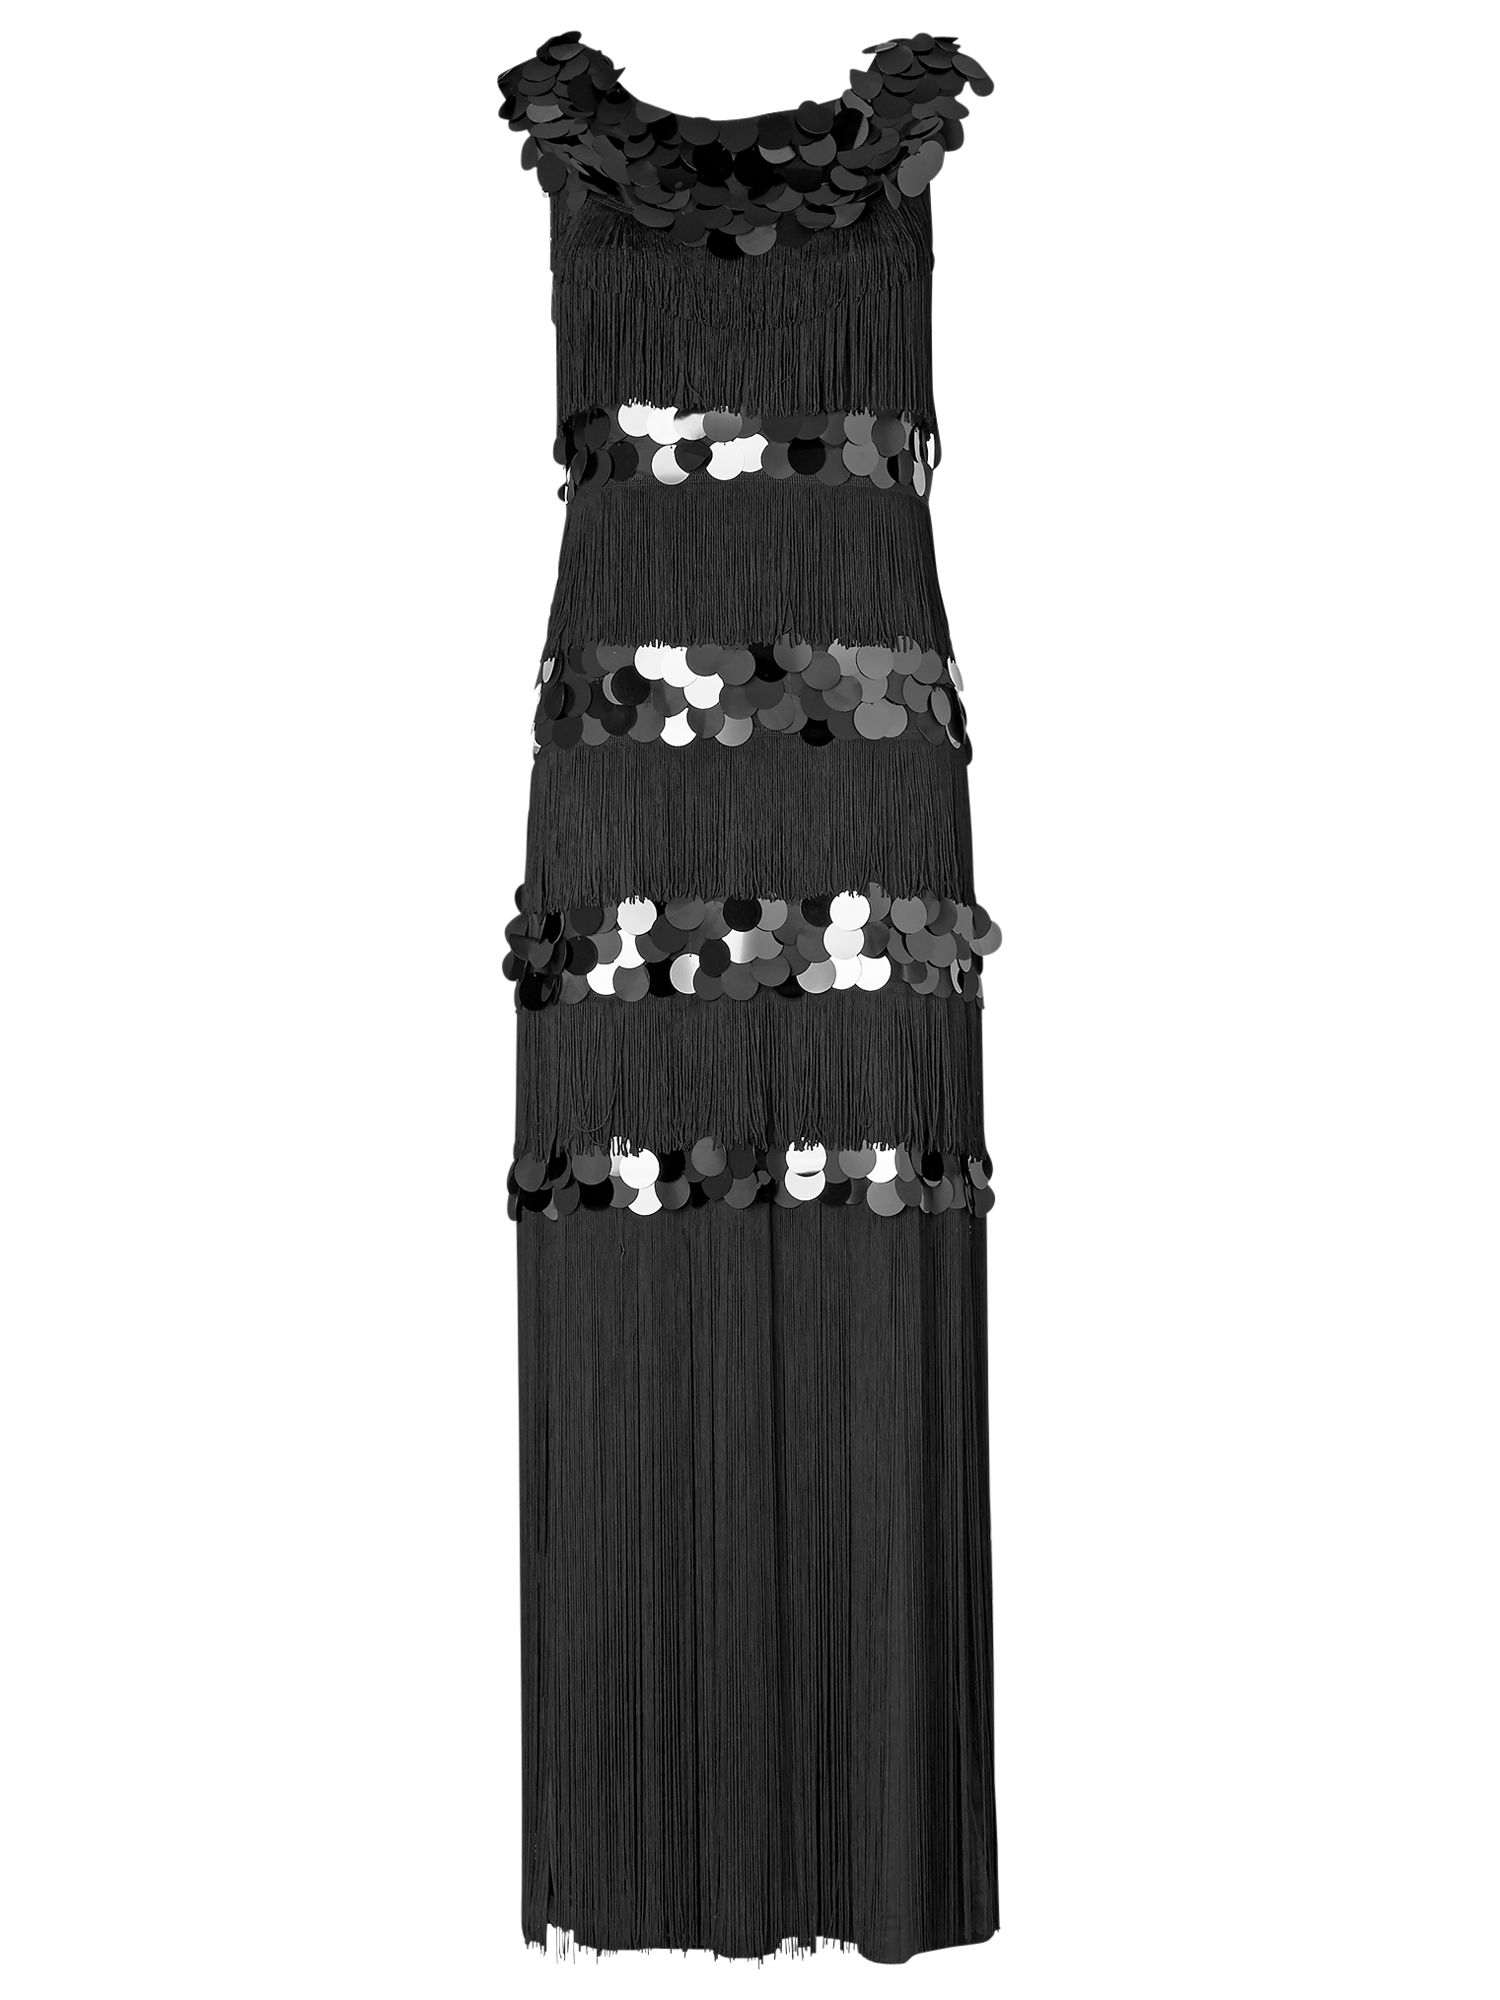 phase eight noleen fringed maxi dress black, phase, eight, noleen, fringed, maxi, dress, black, phase eight, 8|10|14, clearance, womenswear offers, womens dresses offers, women, nov 14 - laid-back luxe, special offers, fashion magazine, brands l-z, inactive womenswear, new years party offers, new reductions, womens dresses, party outfits, evening gowns, buyers top picks, edition magazine, embellishment, eveningwear offers, 1695004